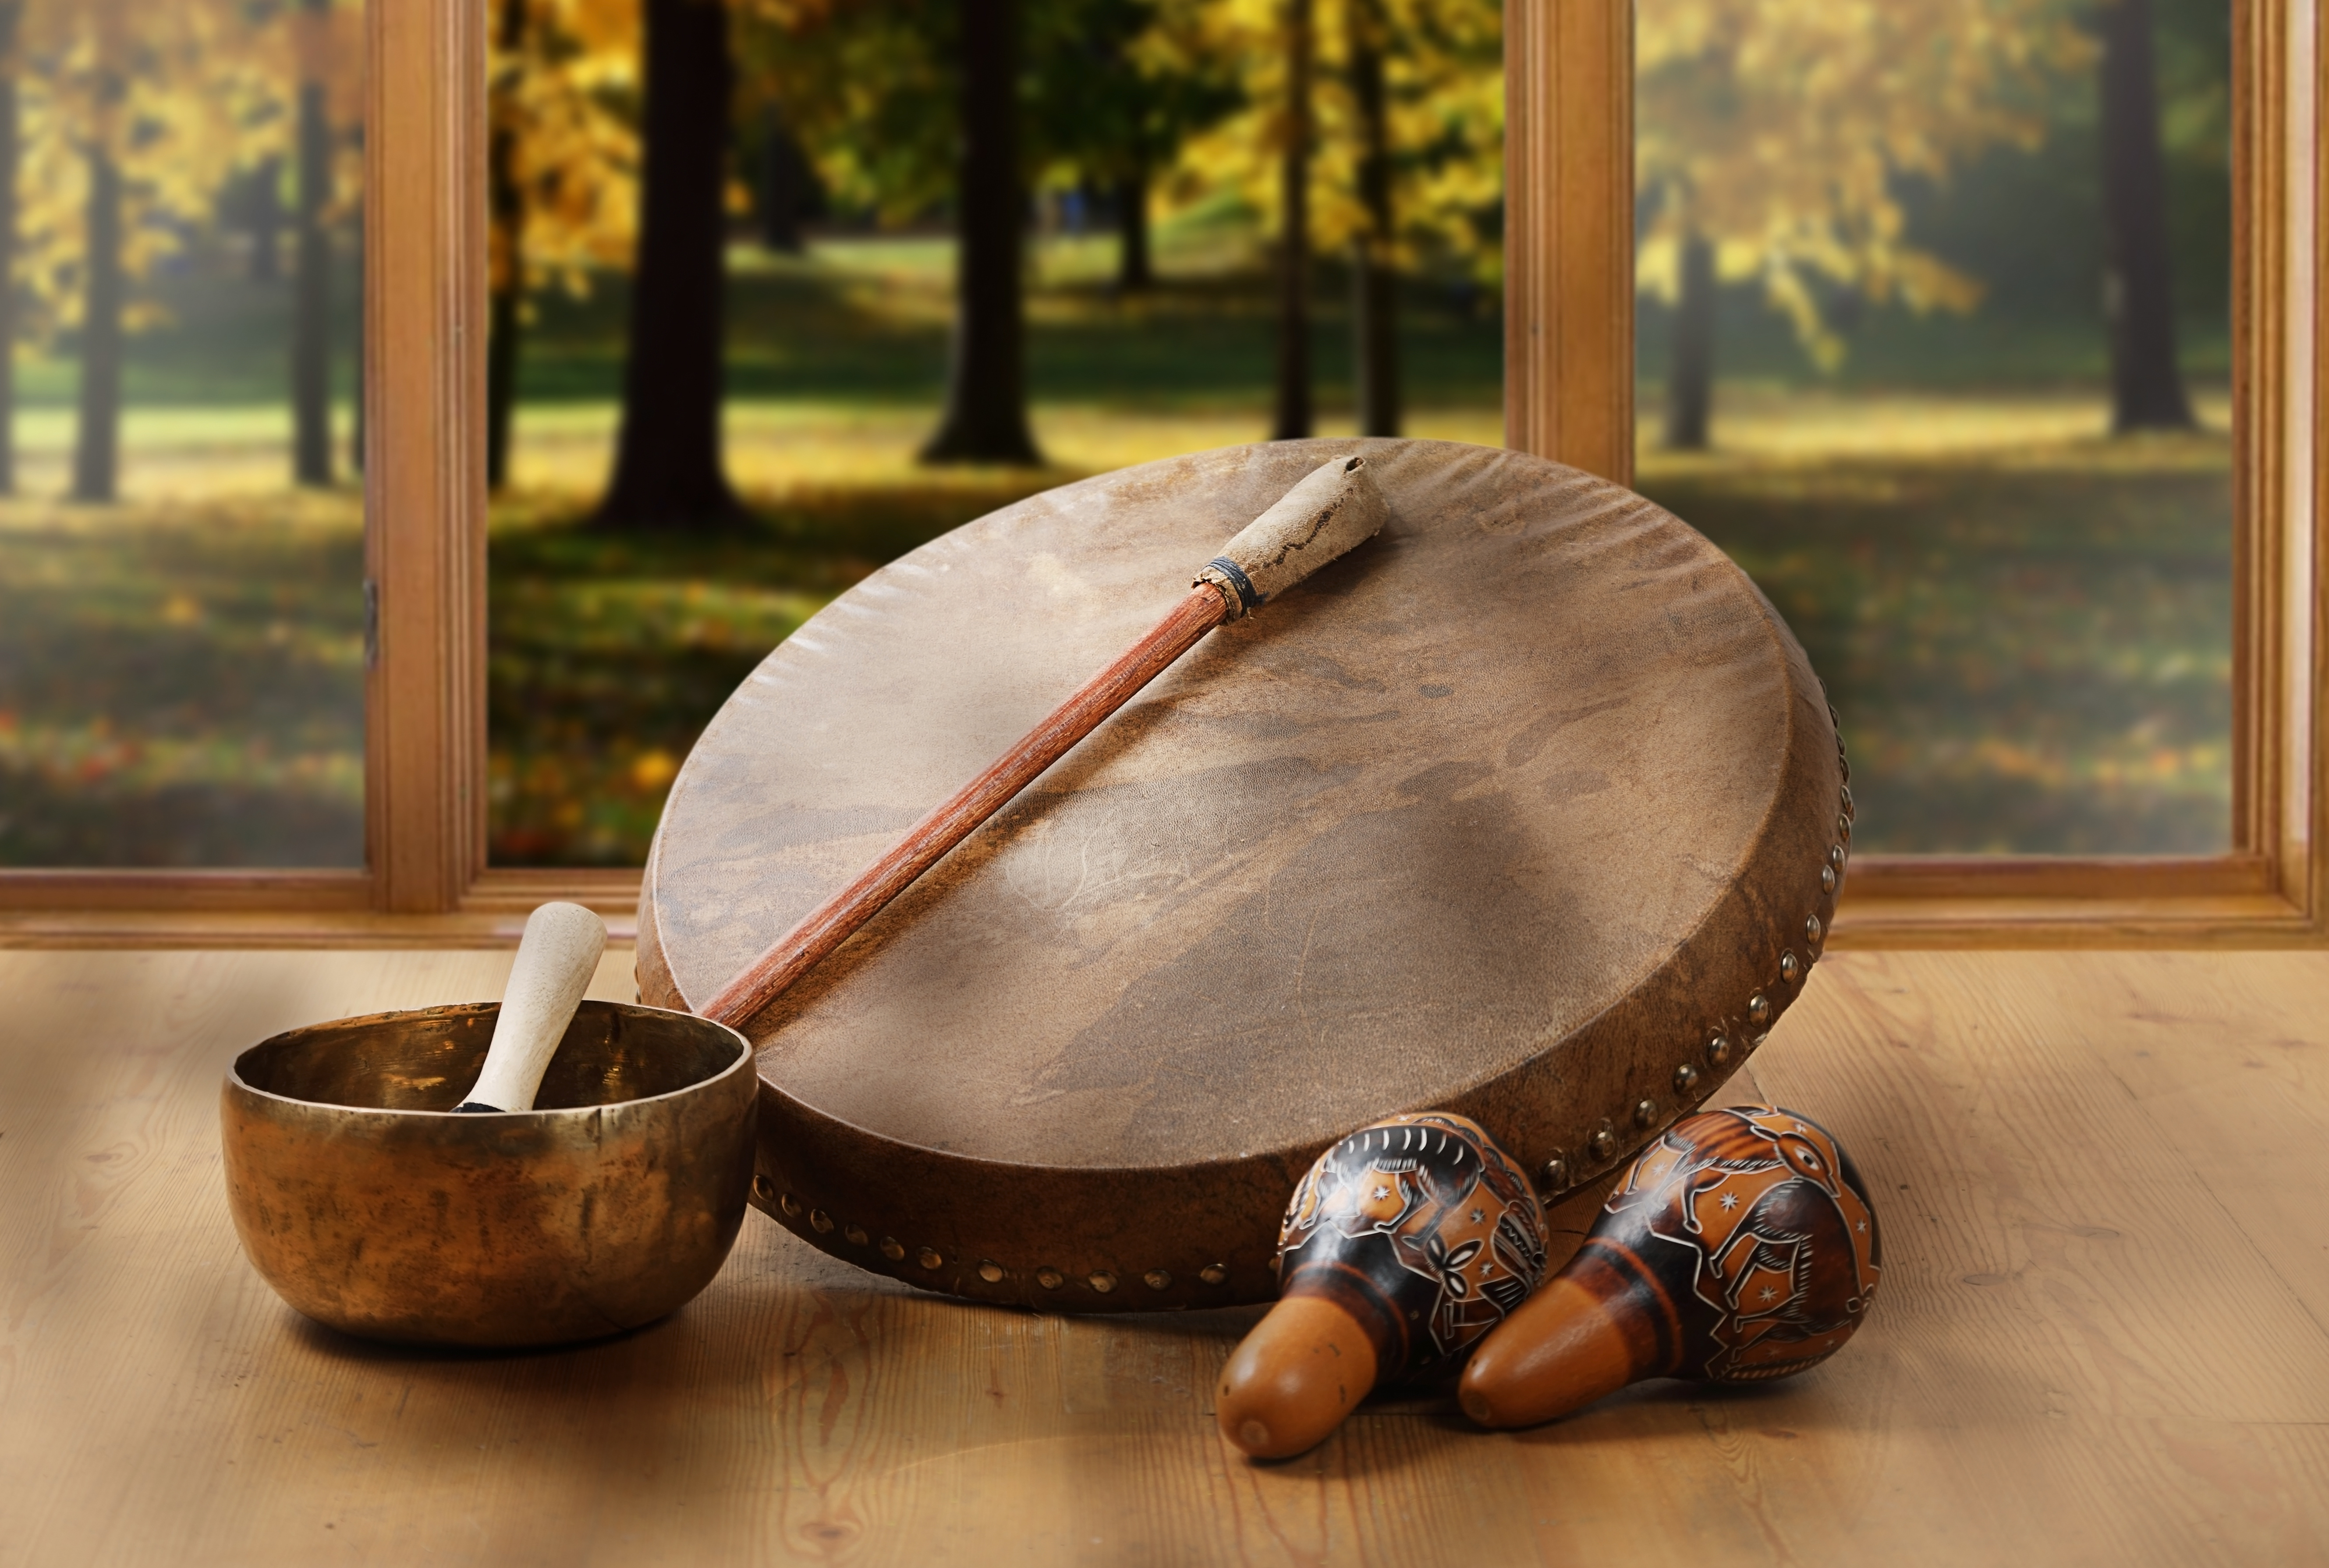 A still life of the shamanic drum, Tibetan singing bowls and maracas on a background of forest.